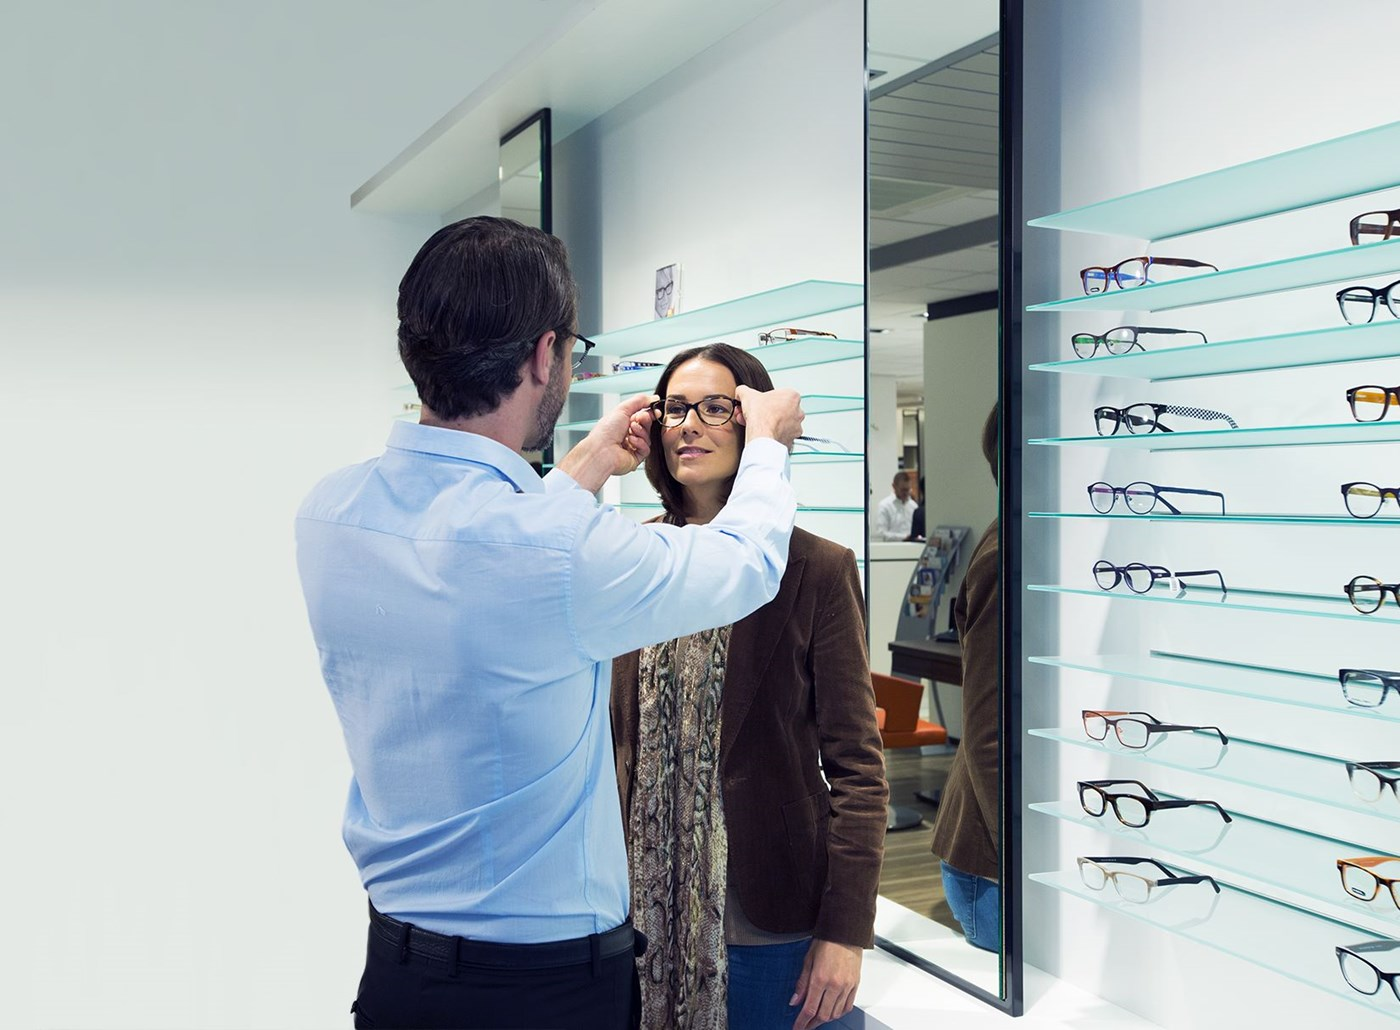 Male Hoya Vision optician placing eyeglasses on a female